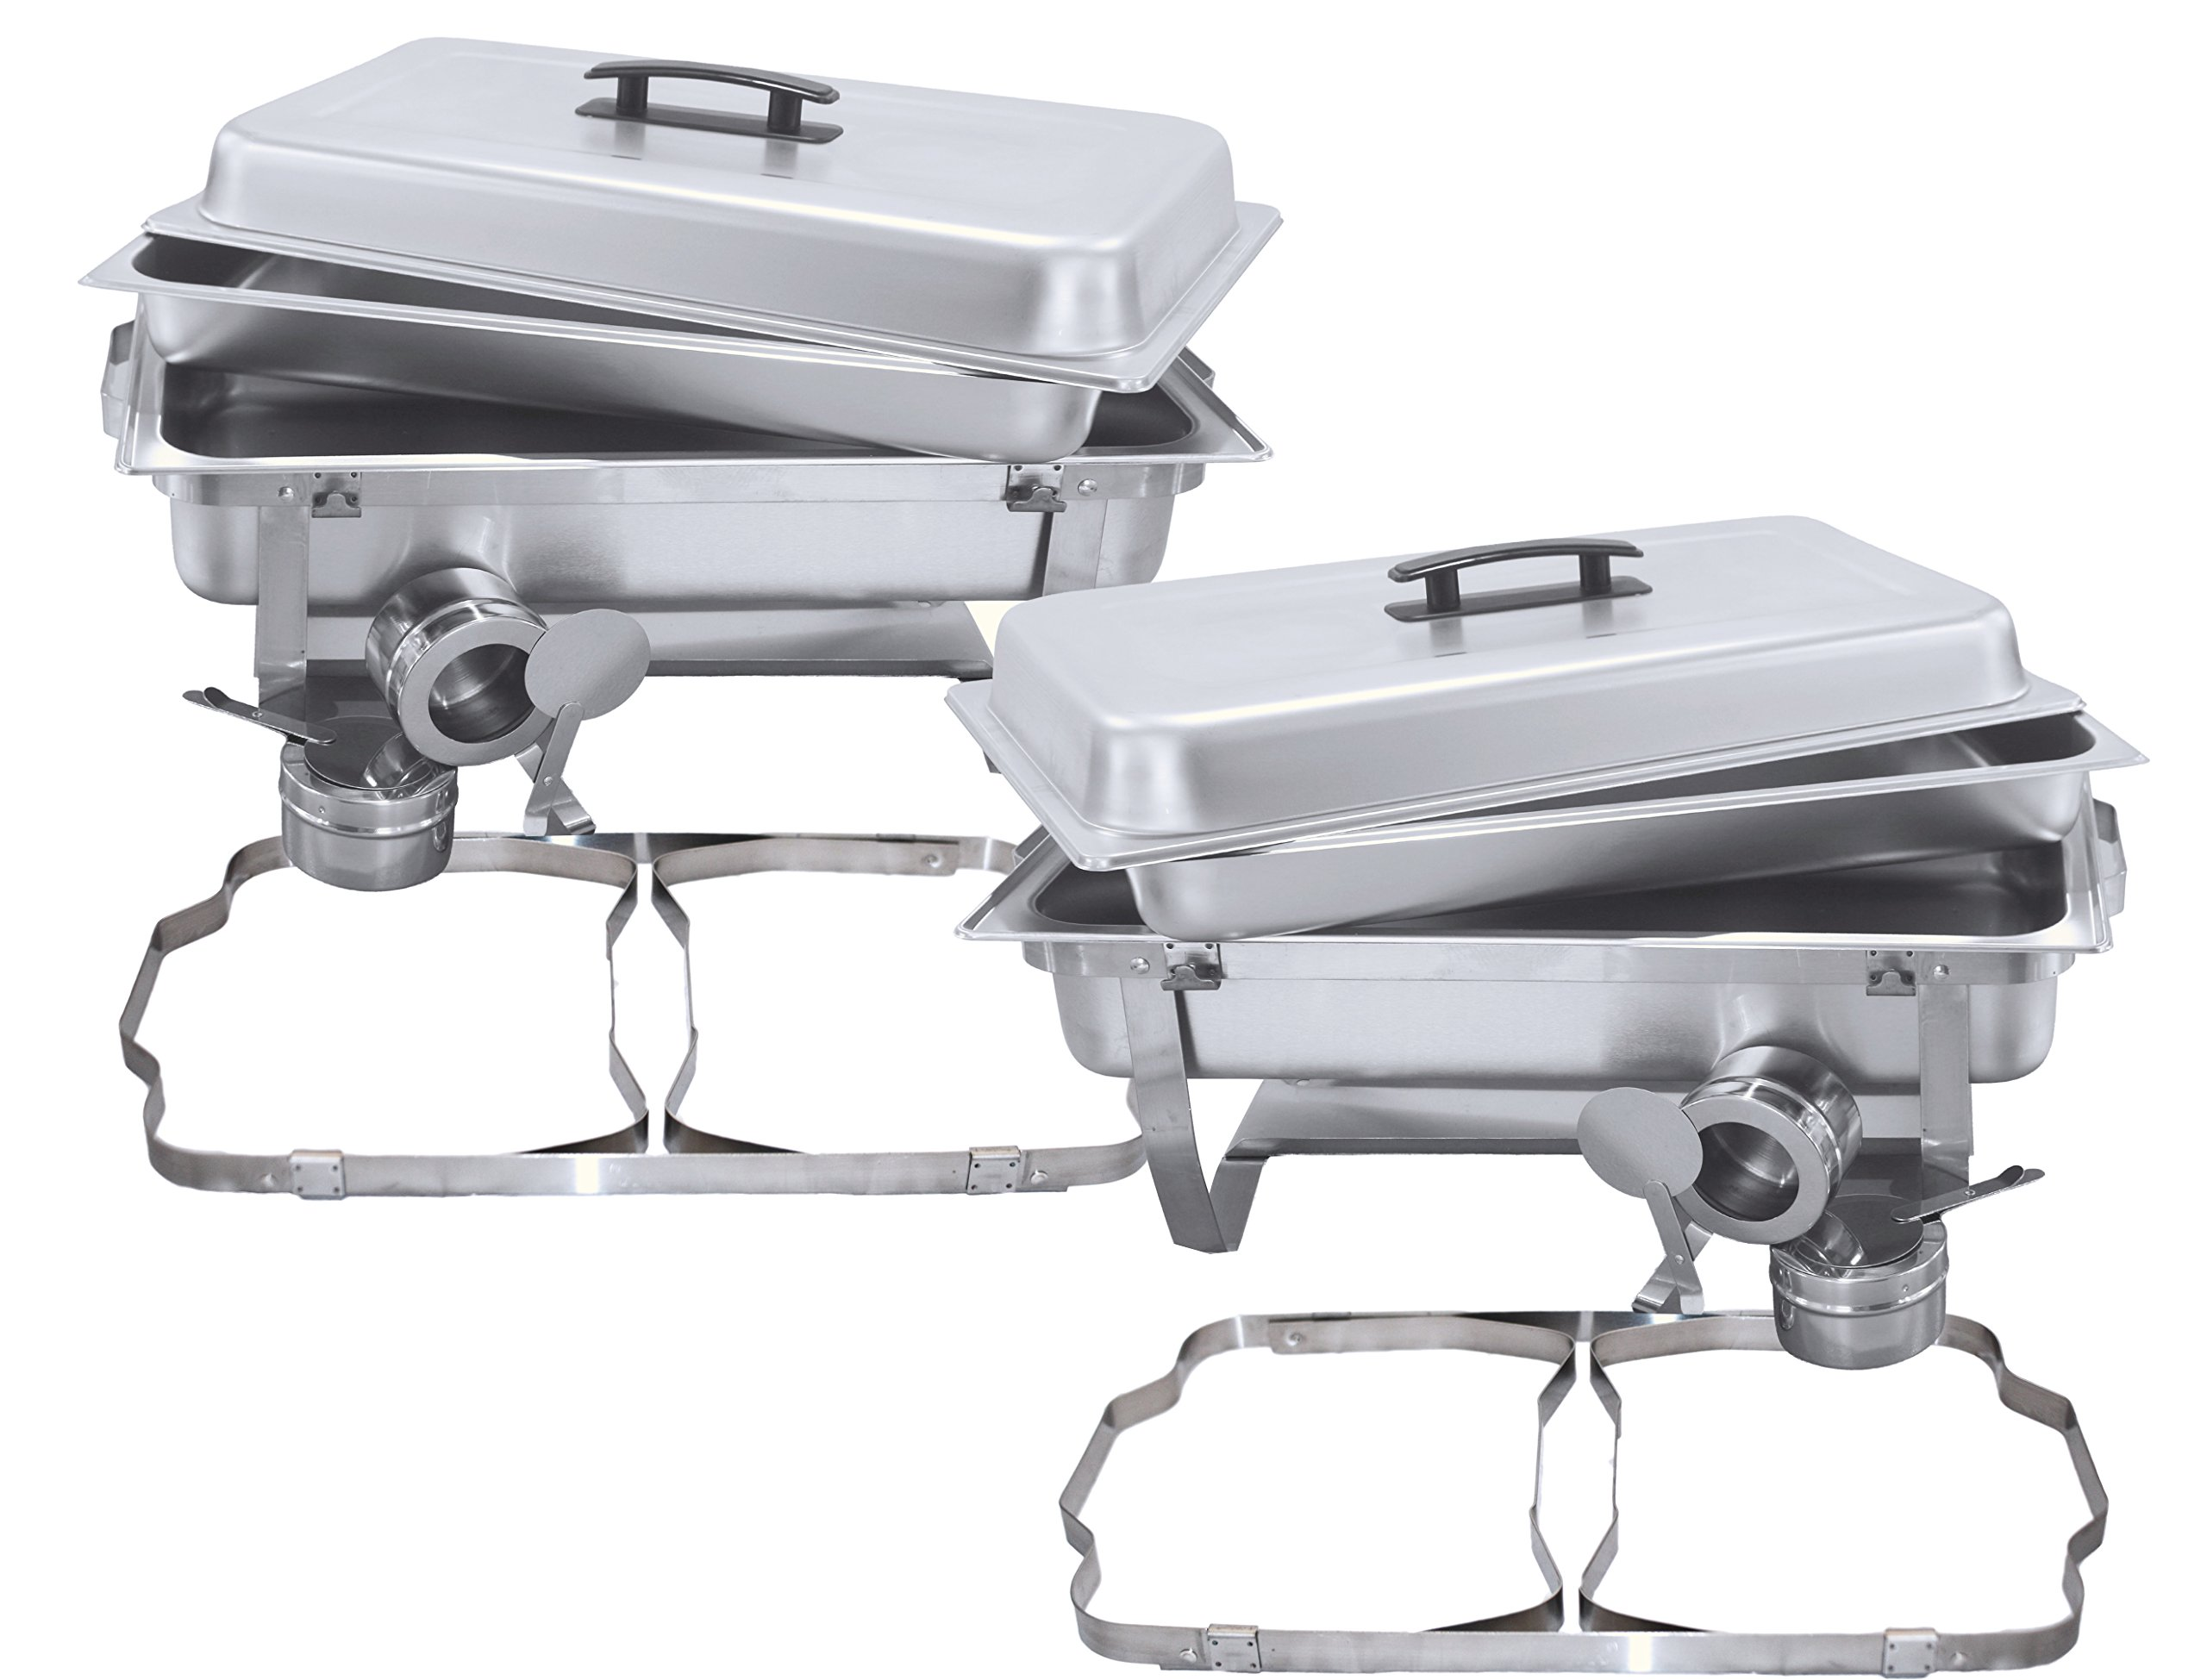 Tiger Chef 2-Pack 8 Quart Full Size Stainless Steel Chafer with Folding Frame and Cool-Touch Plastic on Top